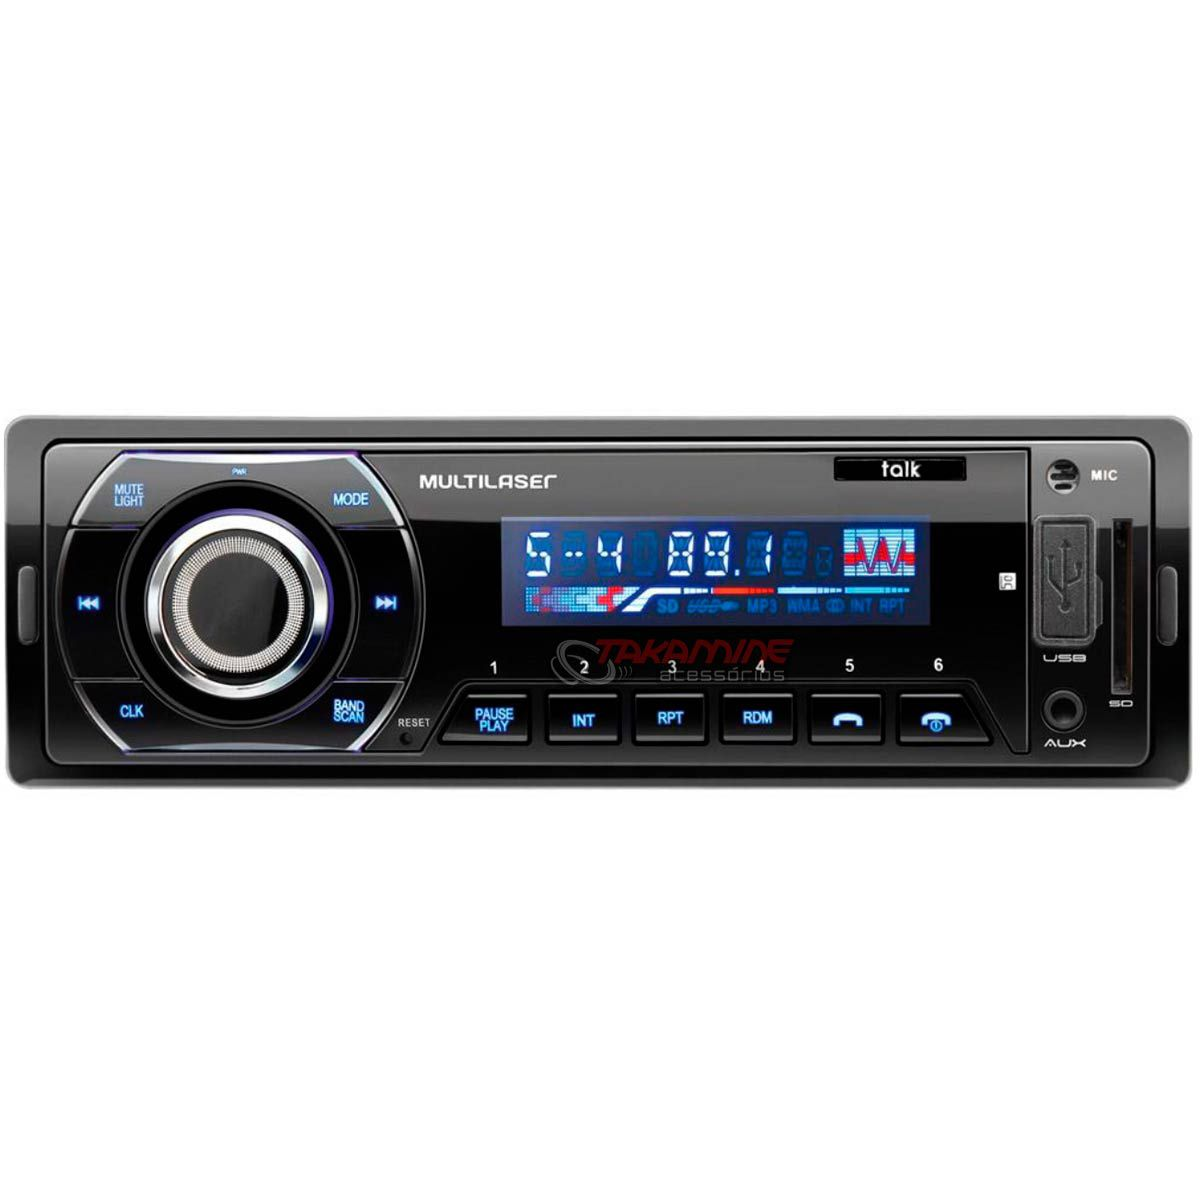 MP3 automotivo Multilaser Talk com bluetooth